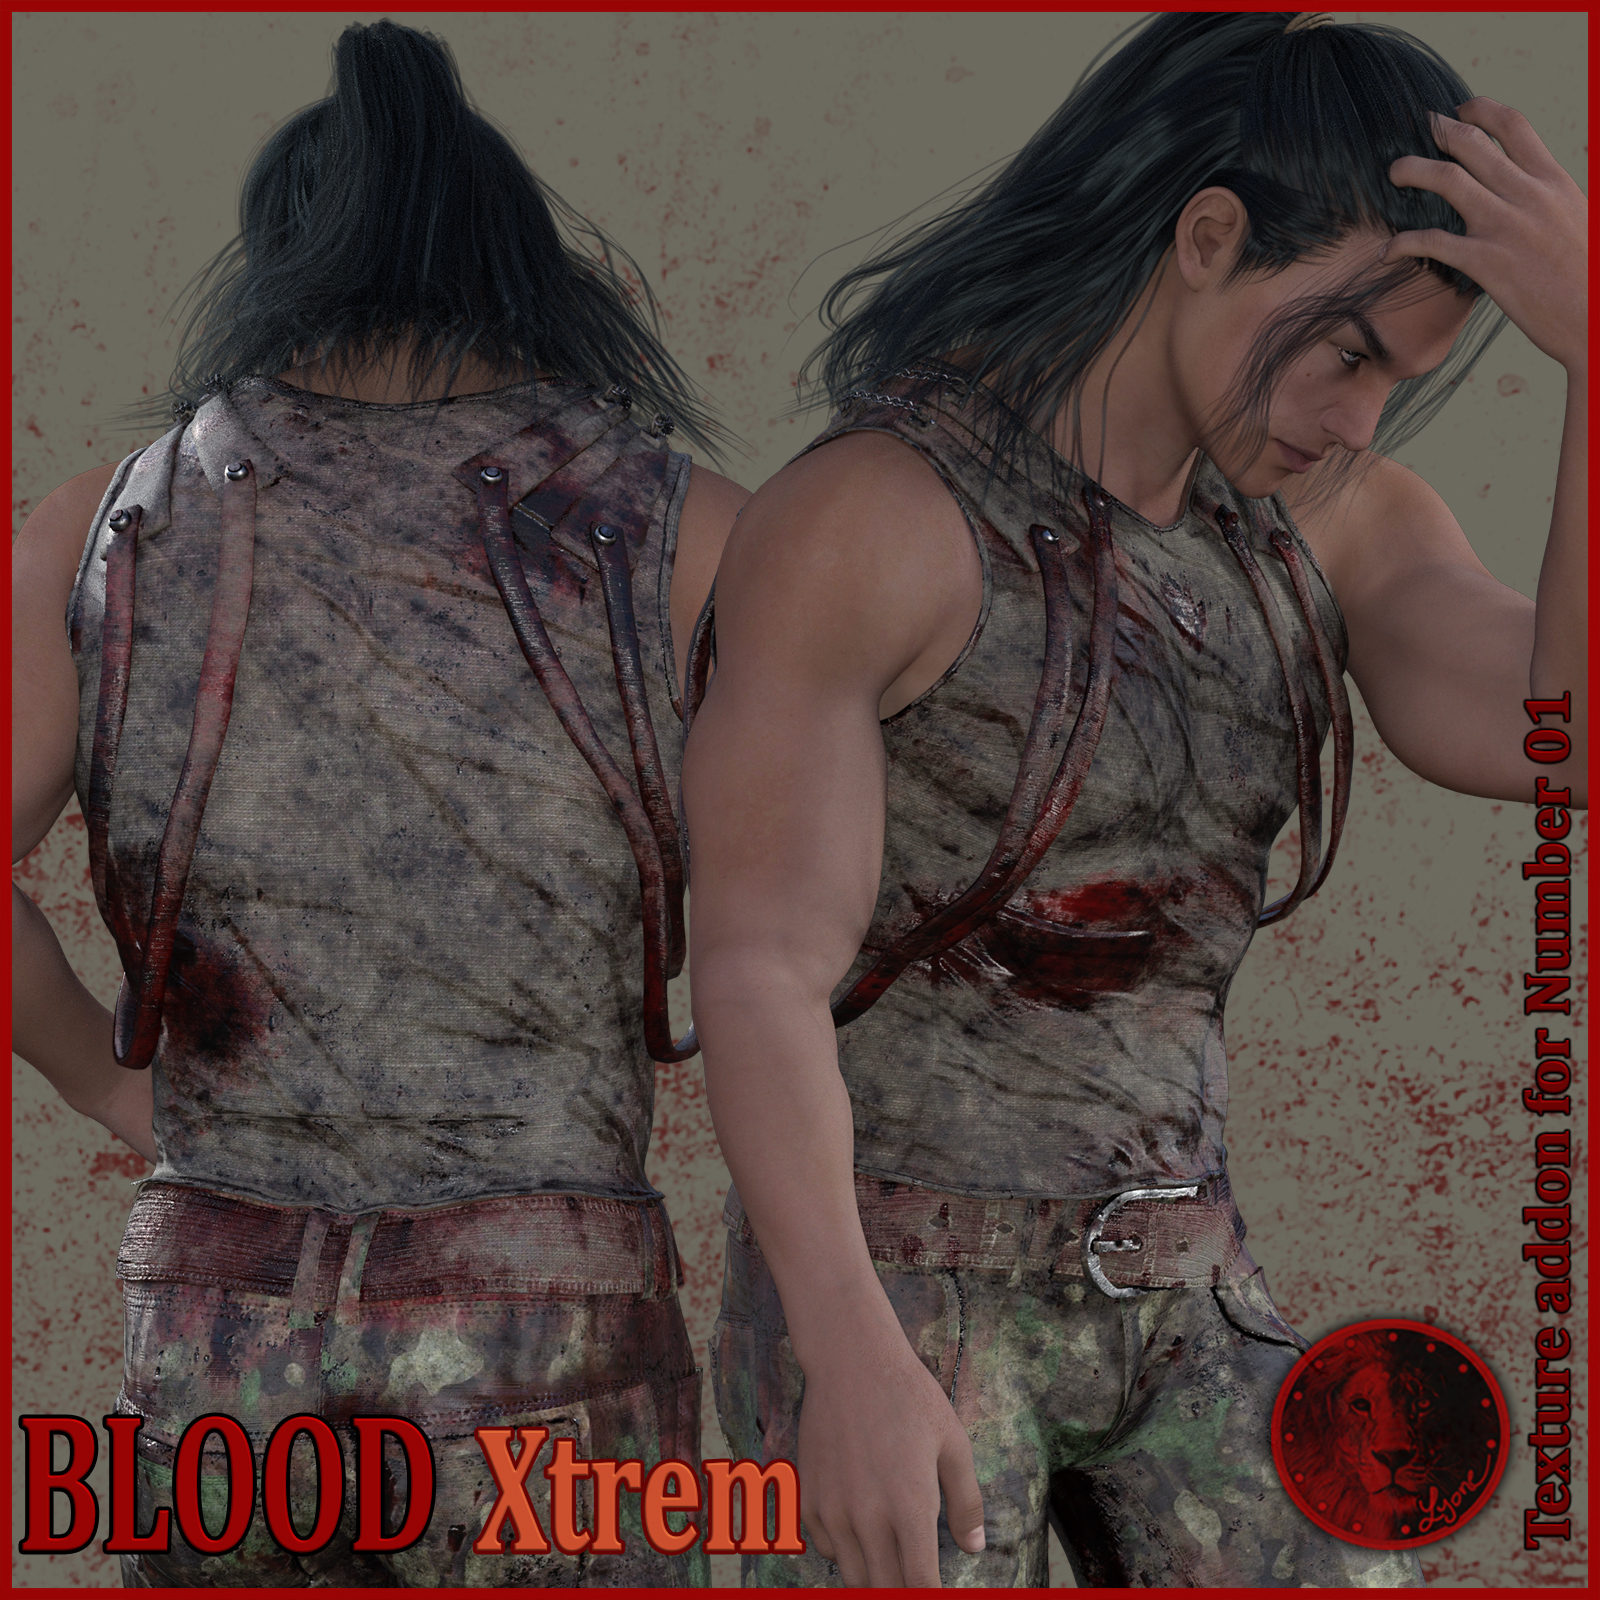 Blood Xtrem for Lyone's Number 01 outfit